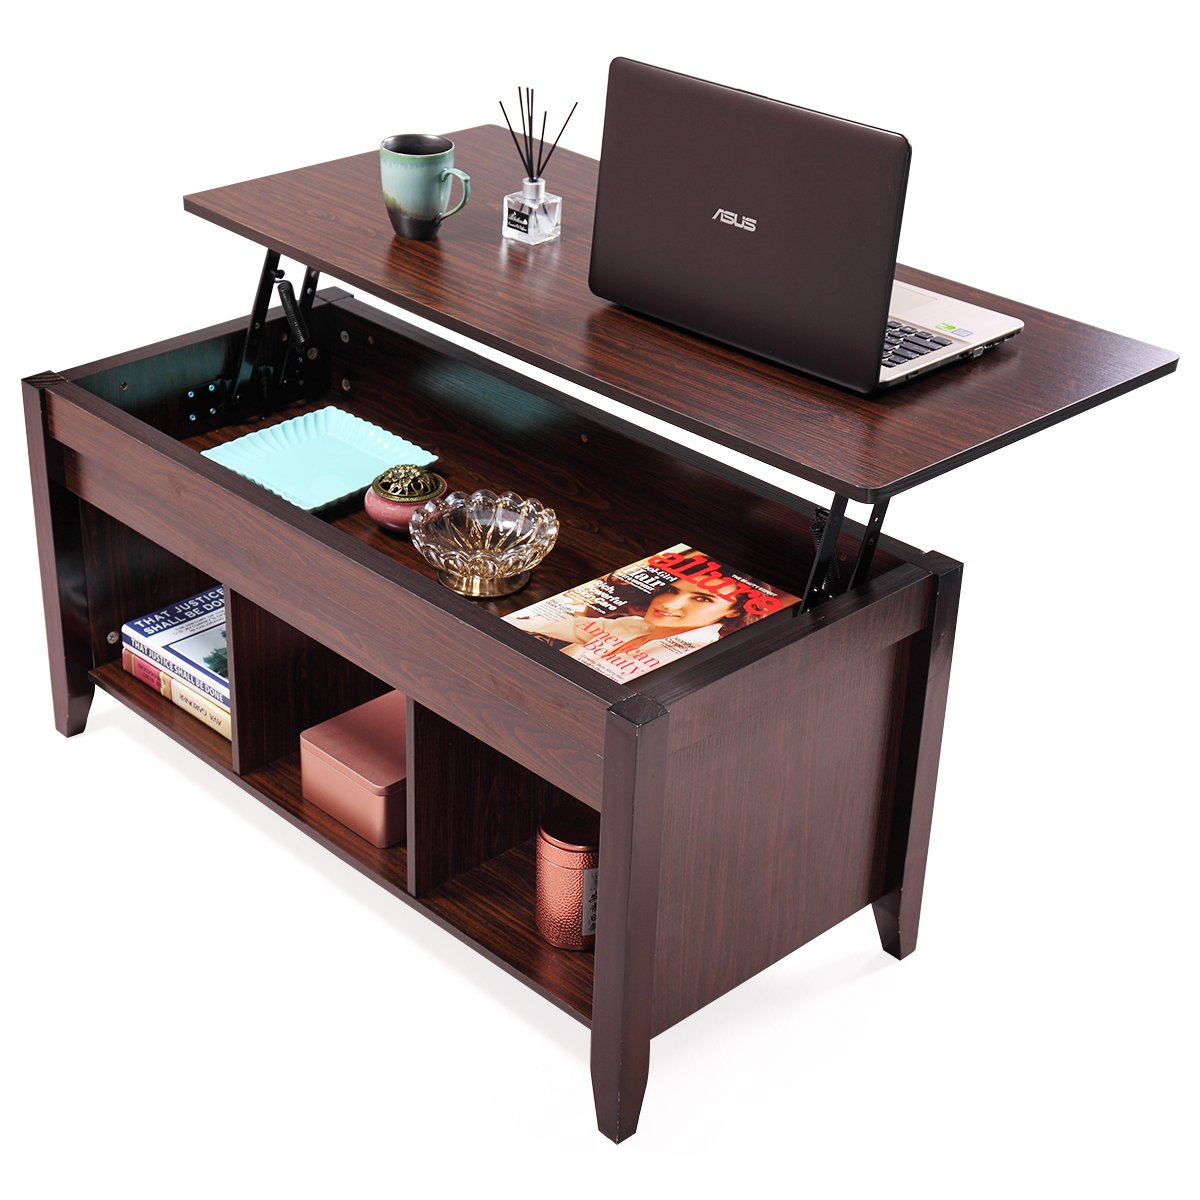 JAXPETY Lift Top Coffee Table w/Hidden Compartment and Storage Shelves Modern Furniture